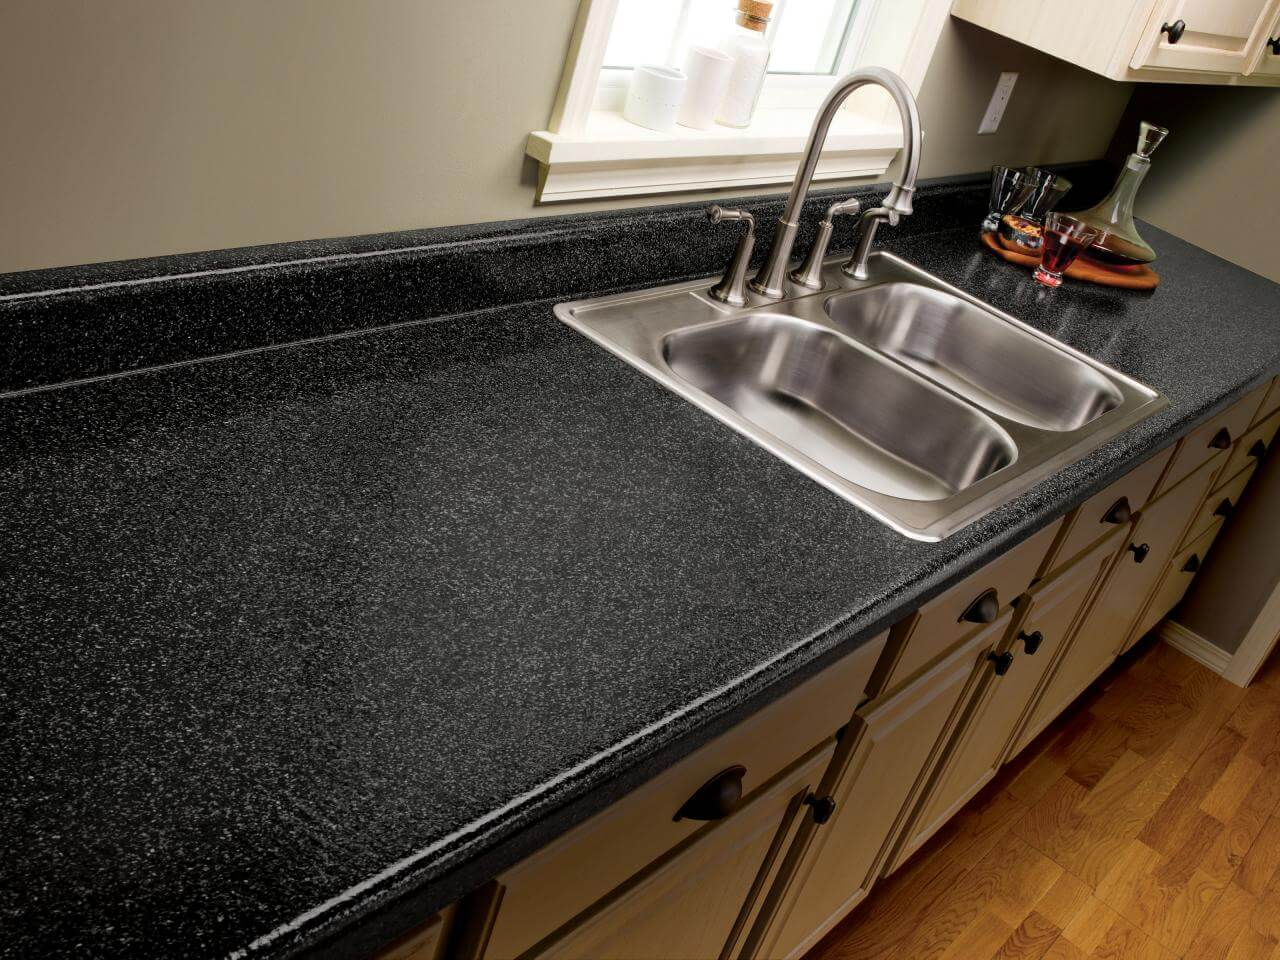 Laminate countertops are very easy to clean